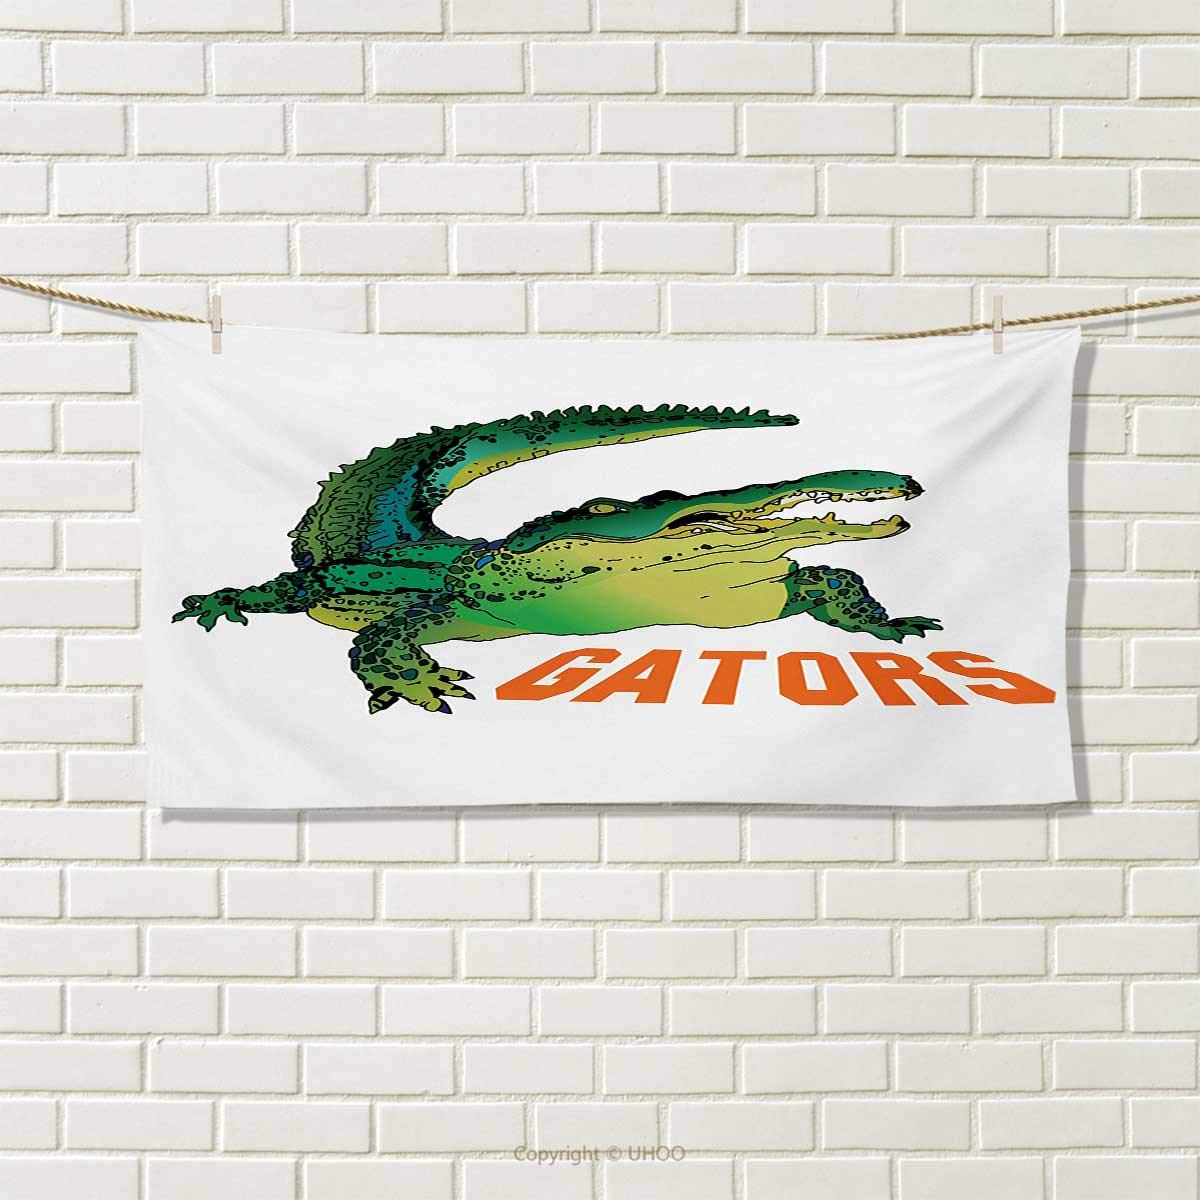 Chaneyhouse Reptile,Hand Towel,Grumpy Alligator Has a Word Gator Crocodile Humor Wild Life Safari Aquatic,Quick-Dry Towels,Green Orange White Size: W 20'' x L 20''